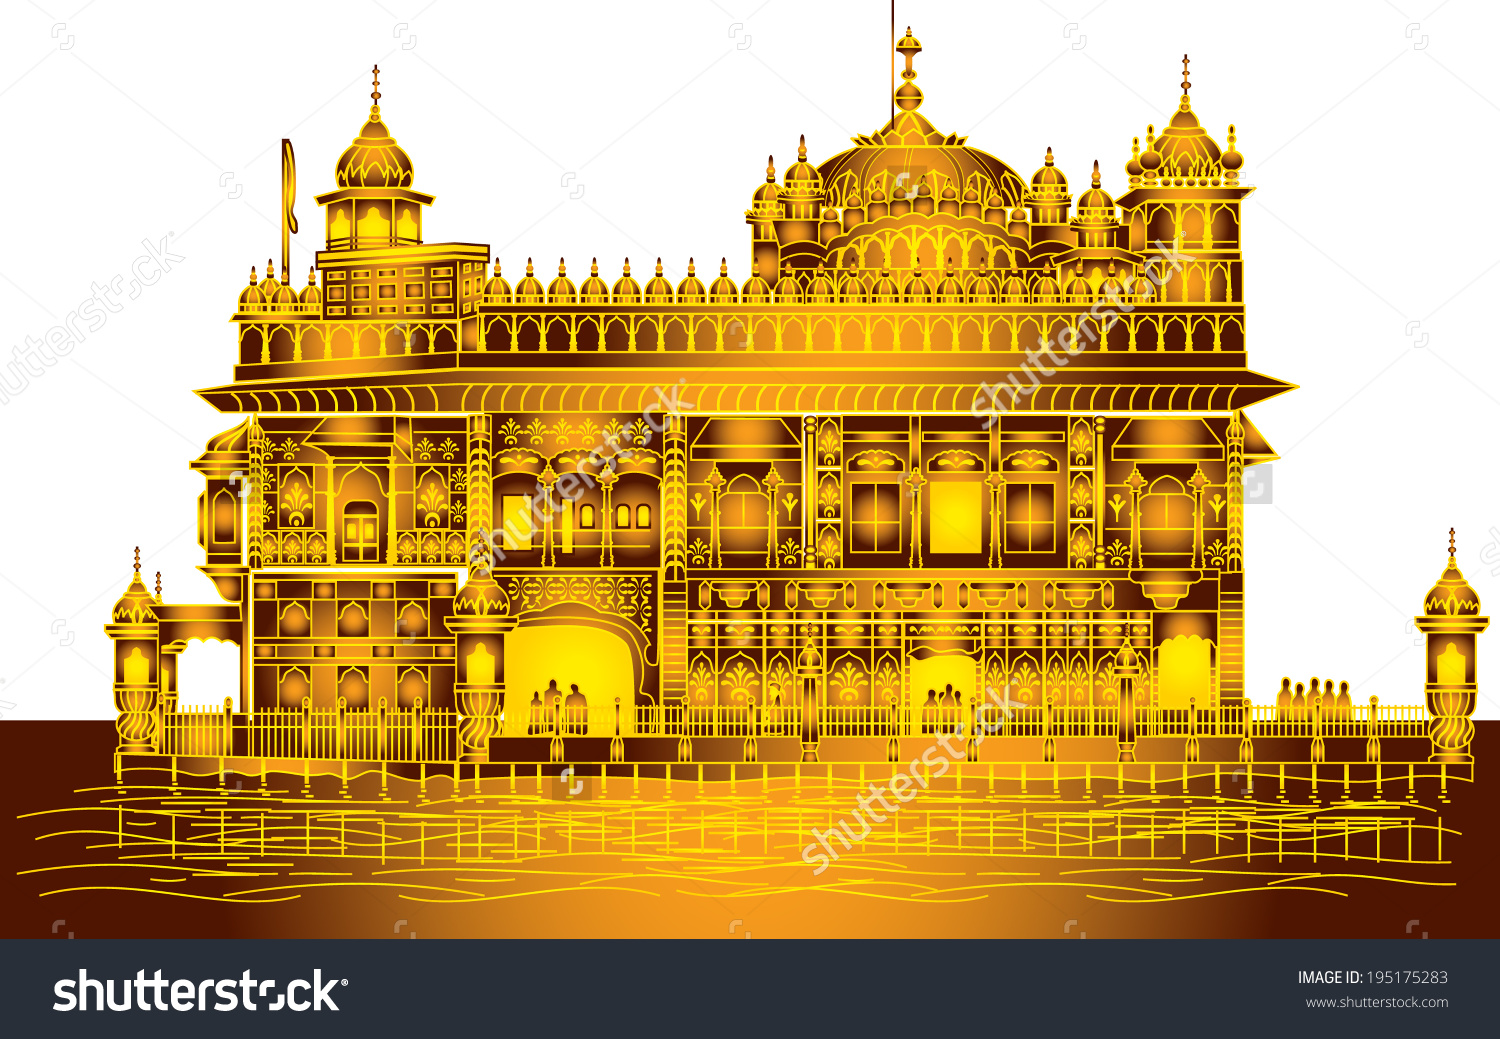 Golden temple amritsar clipart.